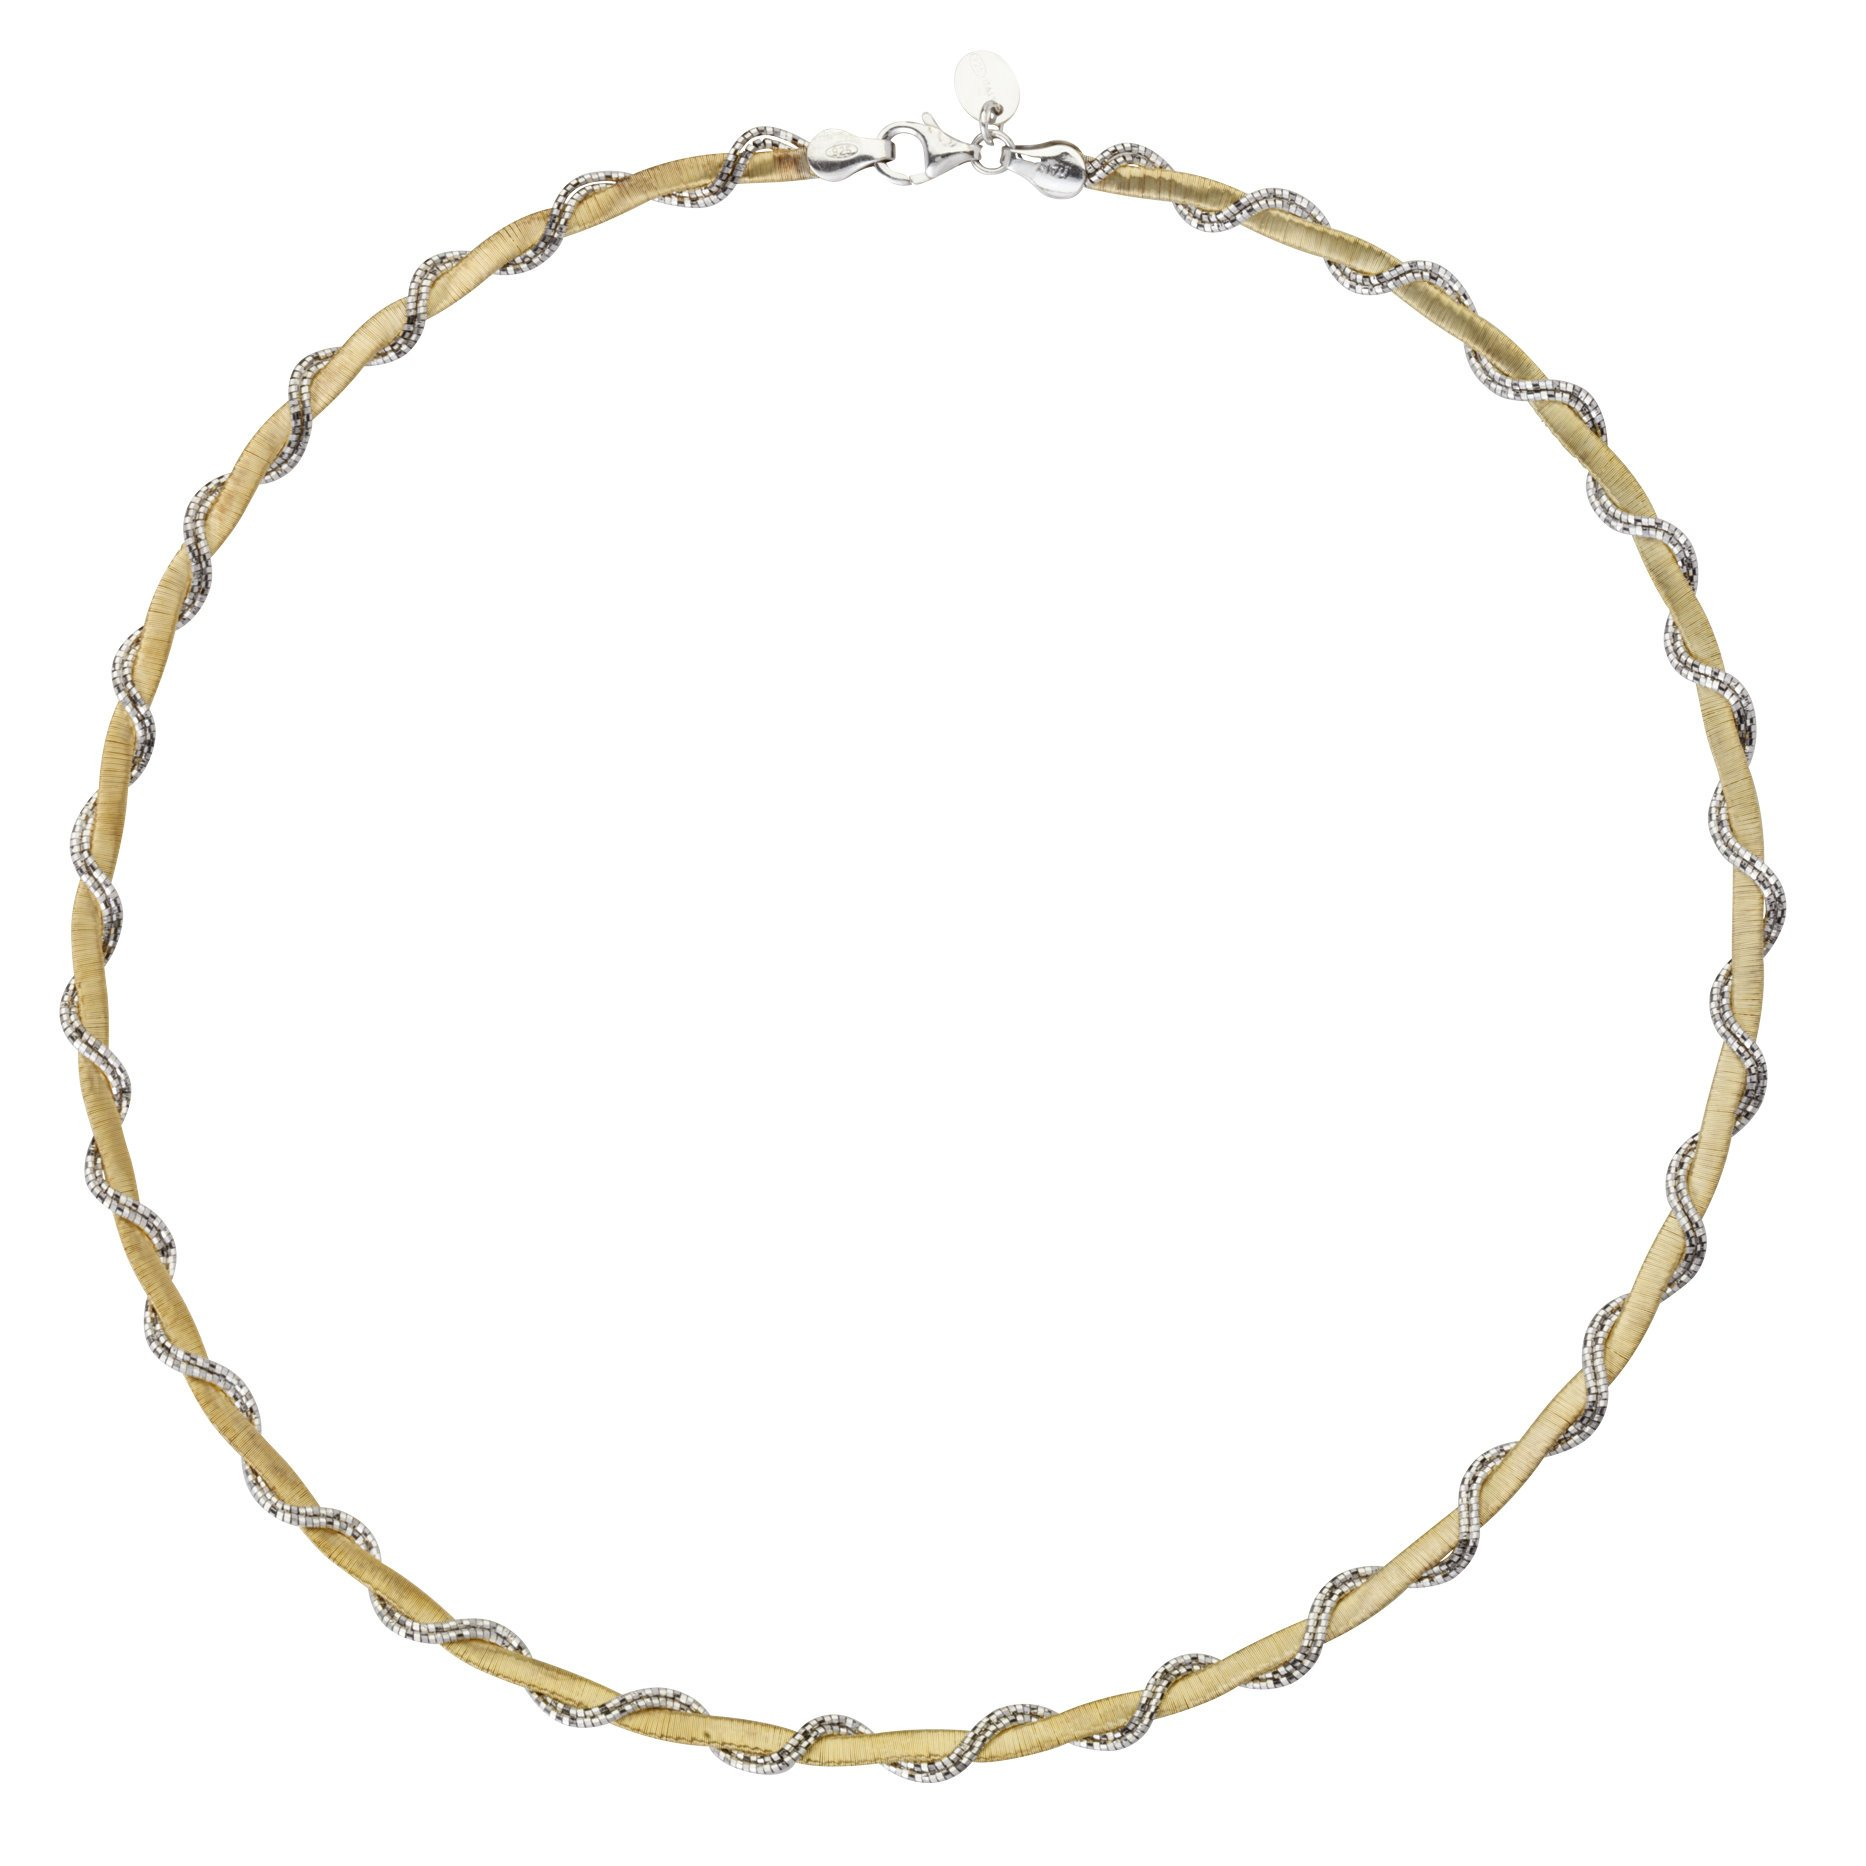 Two Tone White and Yellow Sterling Silver Omega Necklace Braided Vine Style